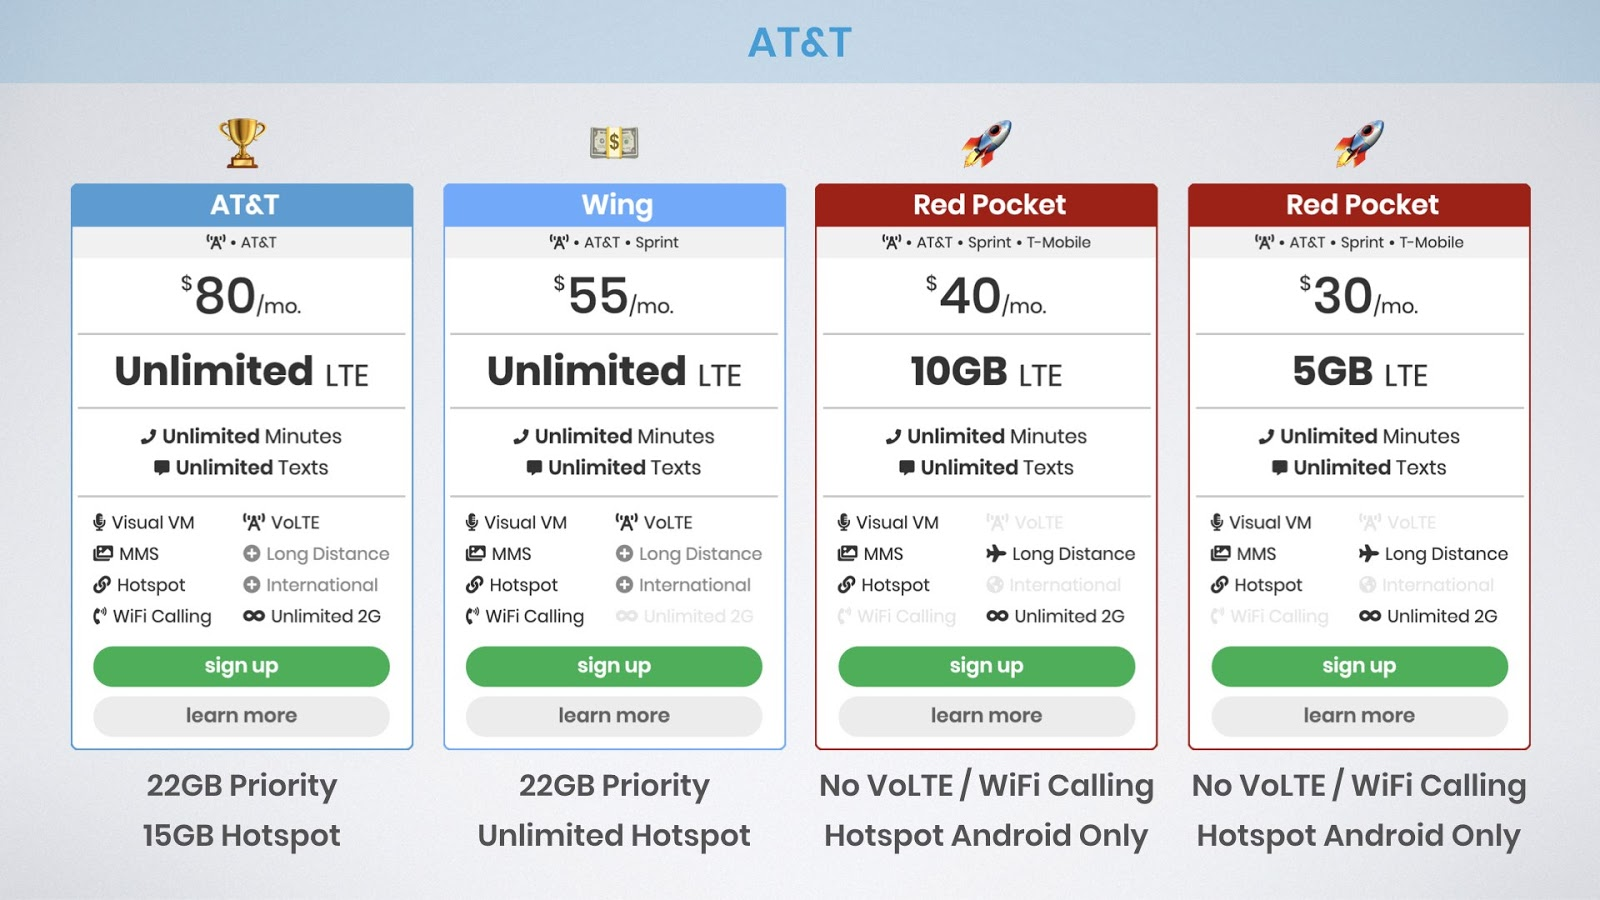 graphic of best unlimited data plans on the AT&T network including AT&T Unlimited &More Premium, Wing, and Red Pocket